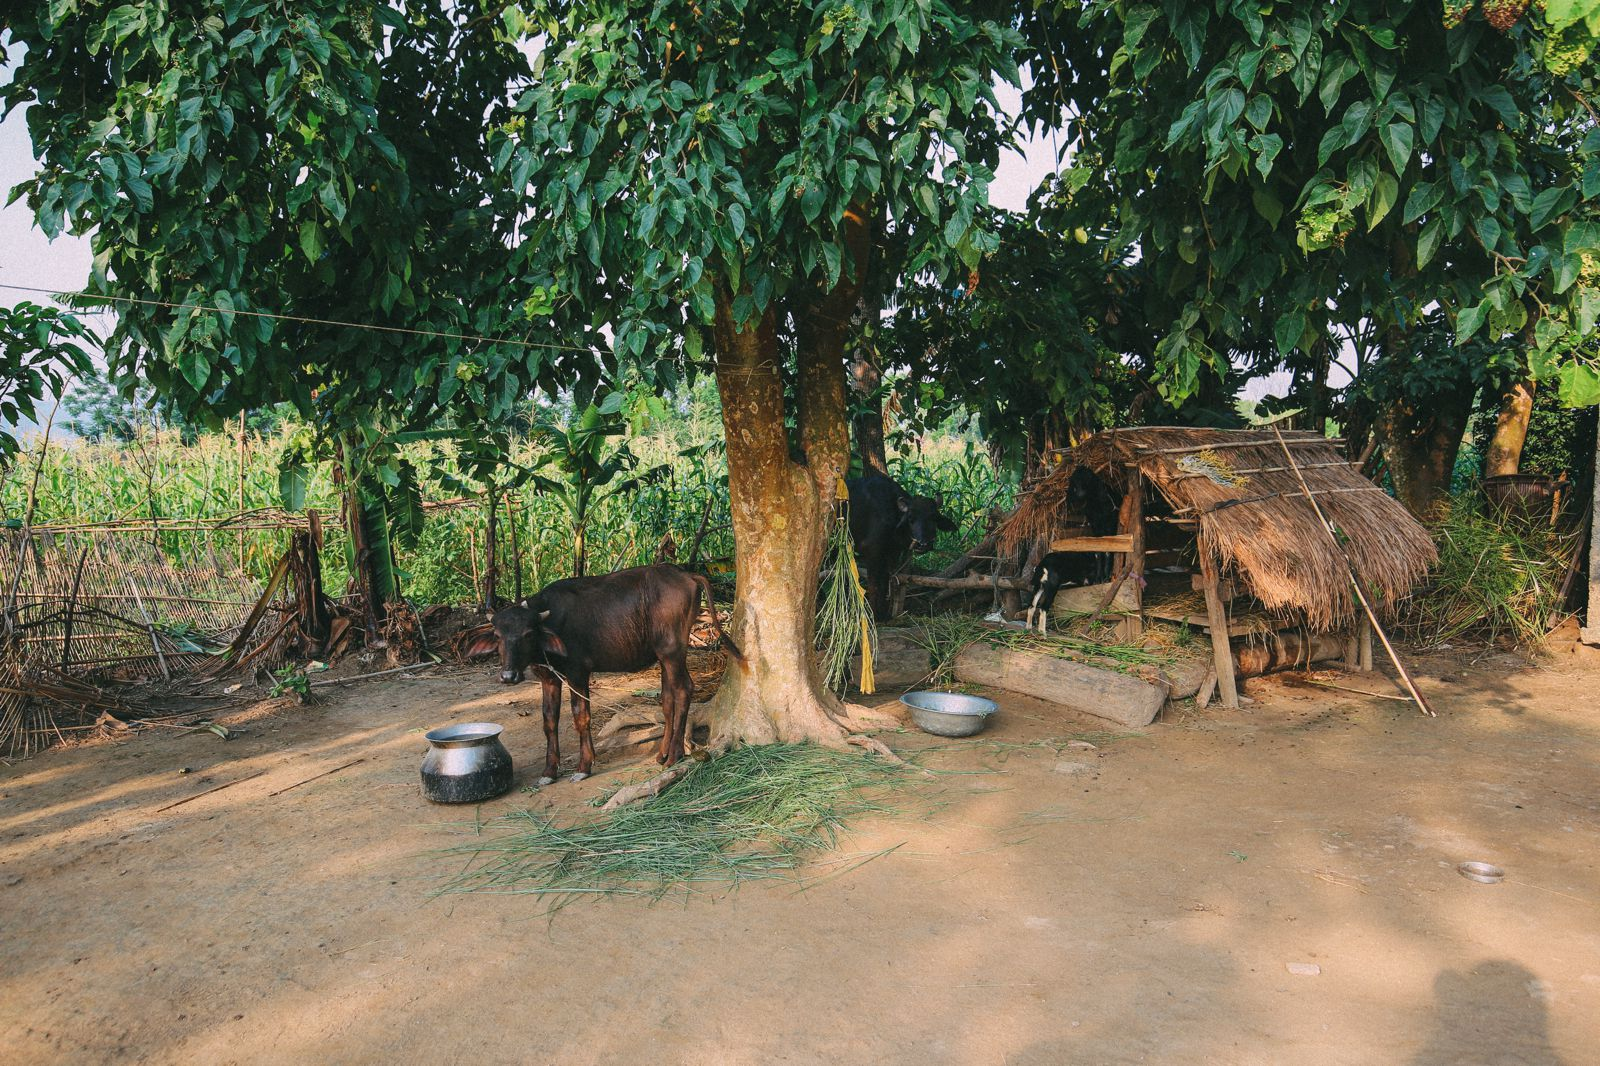 The Sights, Sounds And People Of Chitwan, Nepal (14)